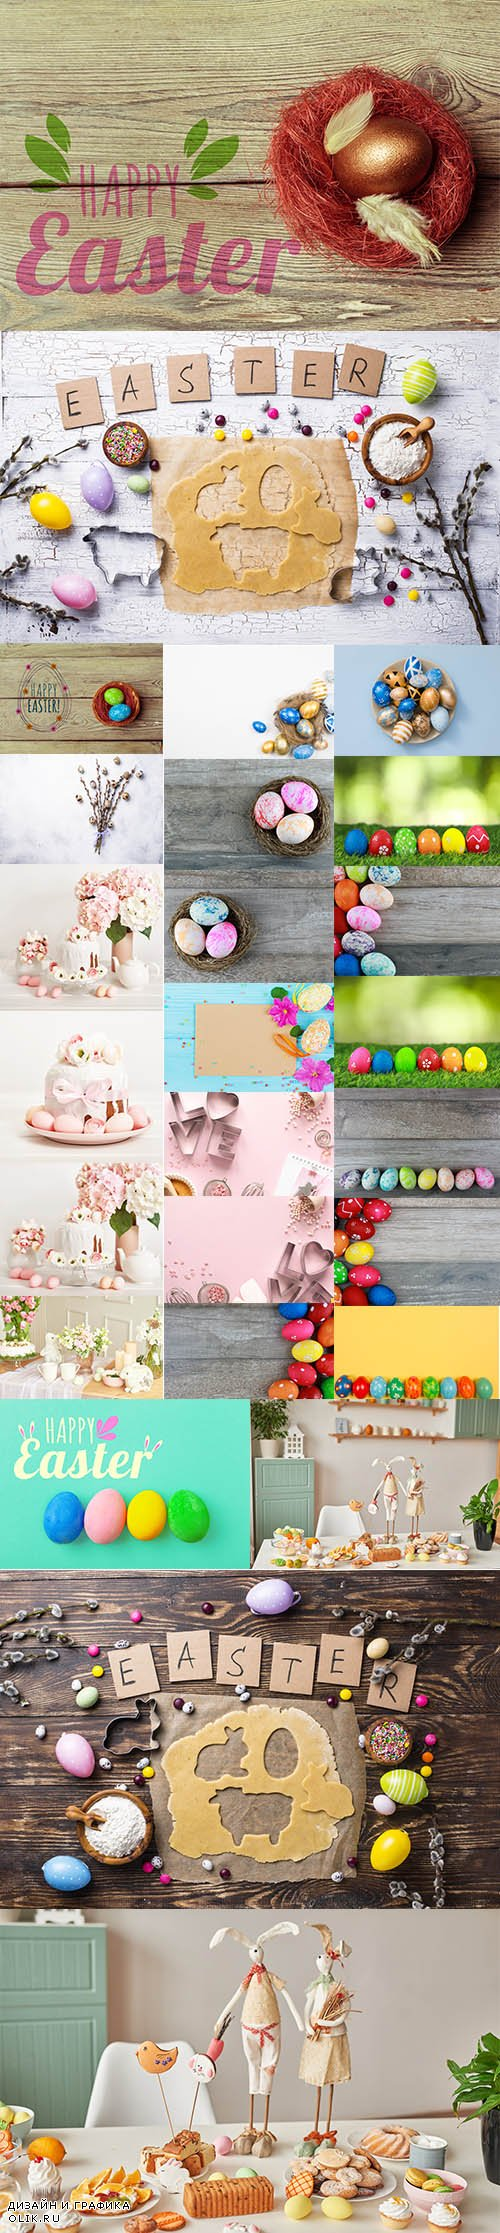 Happy Easter Holiday Decorations Bundle - UHQ JPEG Stock Photo